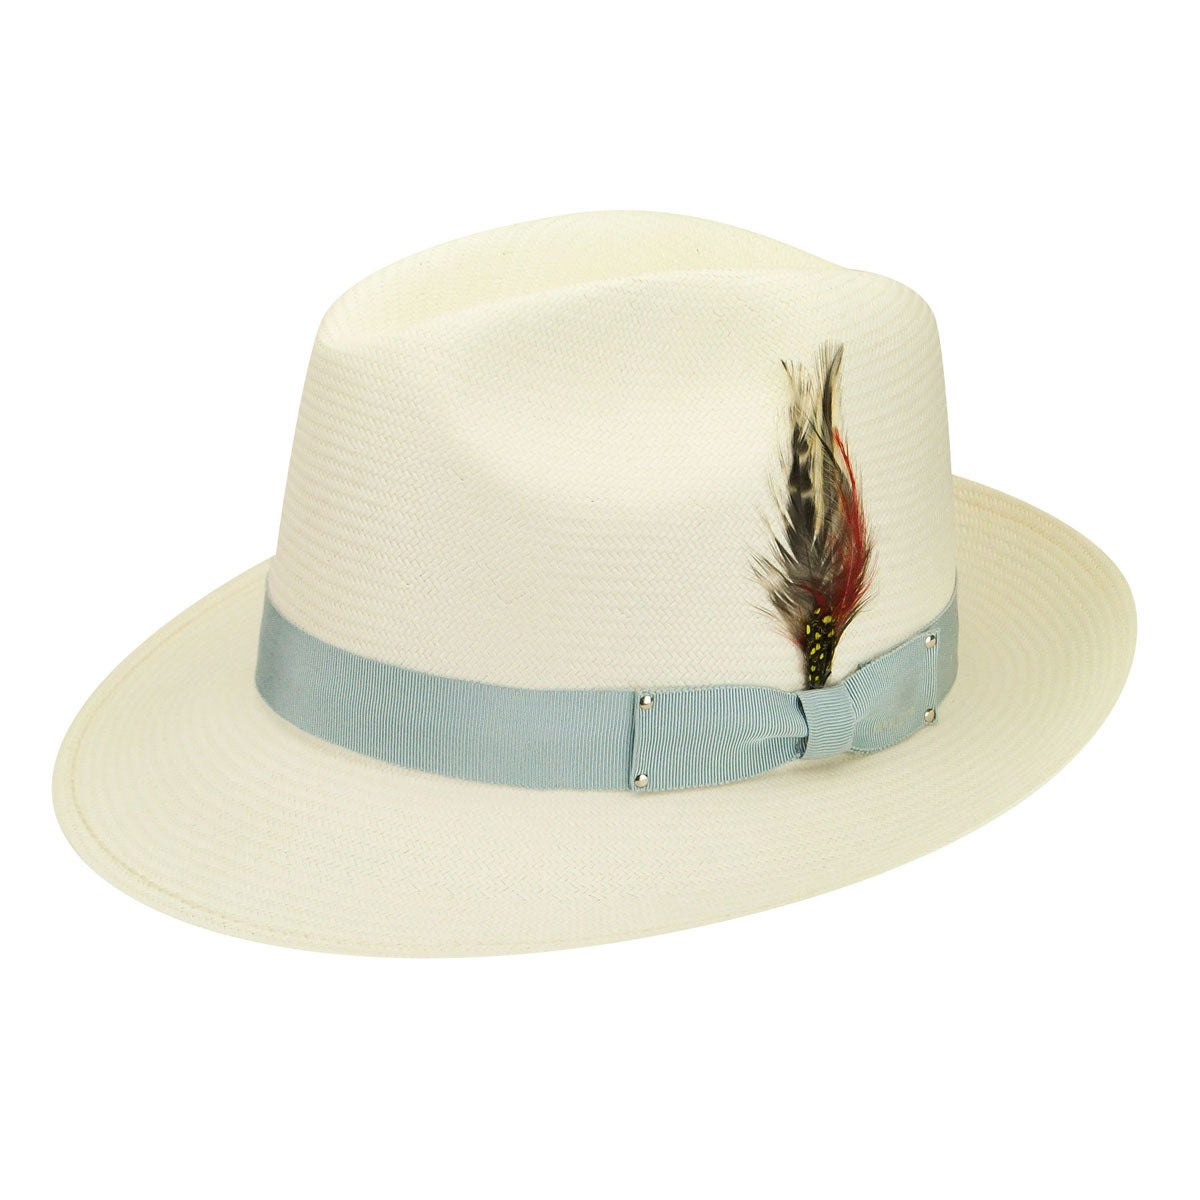 1940s Style Mens Hats Fernley Litestrawreg Fedora $118.00 AT vintagedancer.com